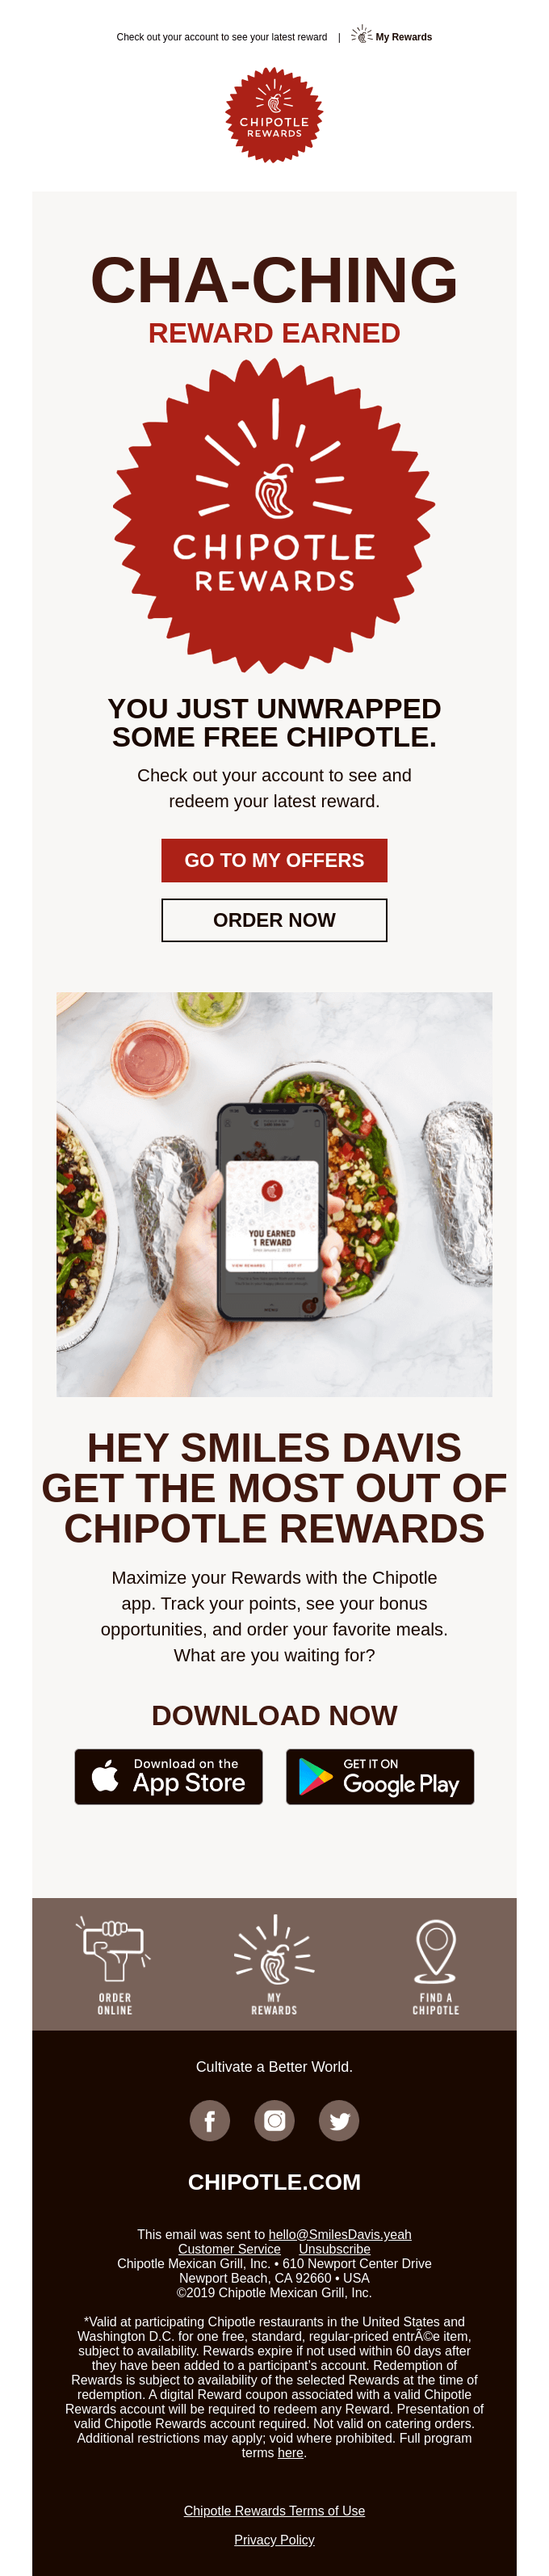 way-to-chipotle-you-earned-a-reward